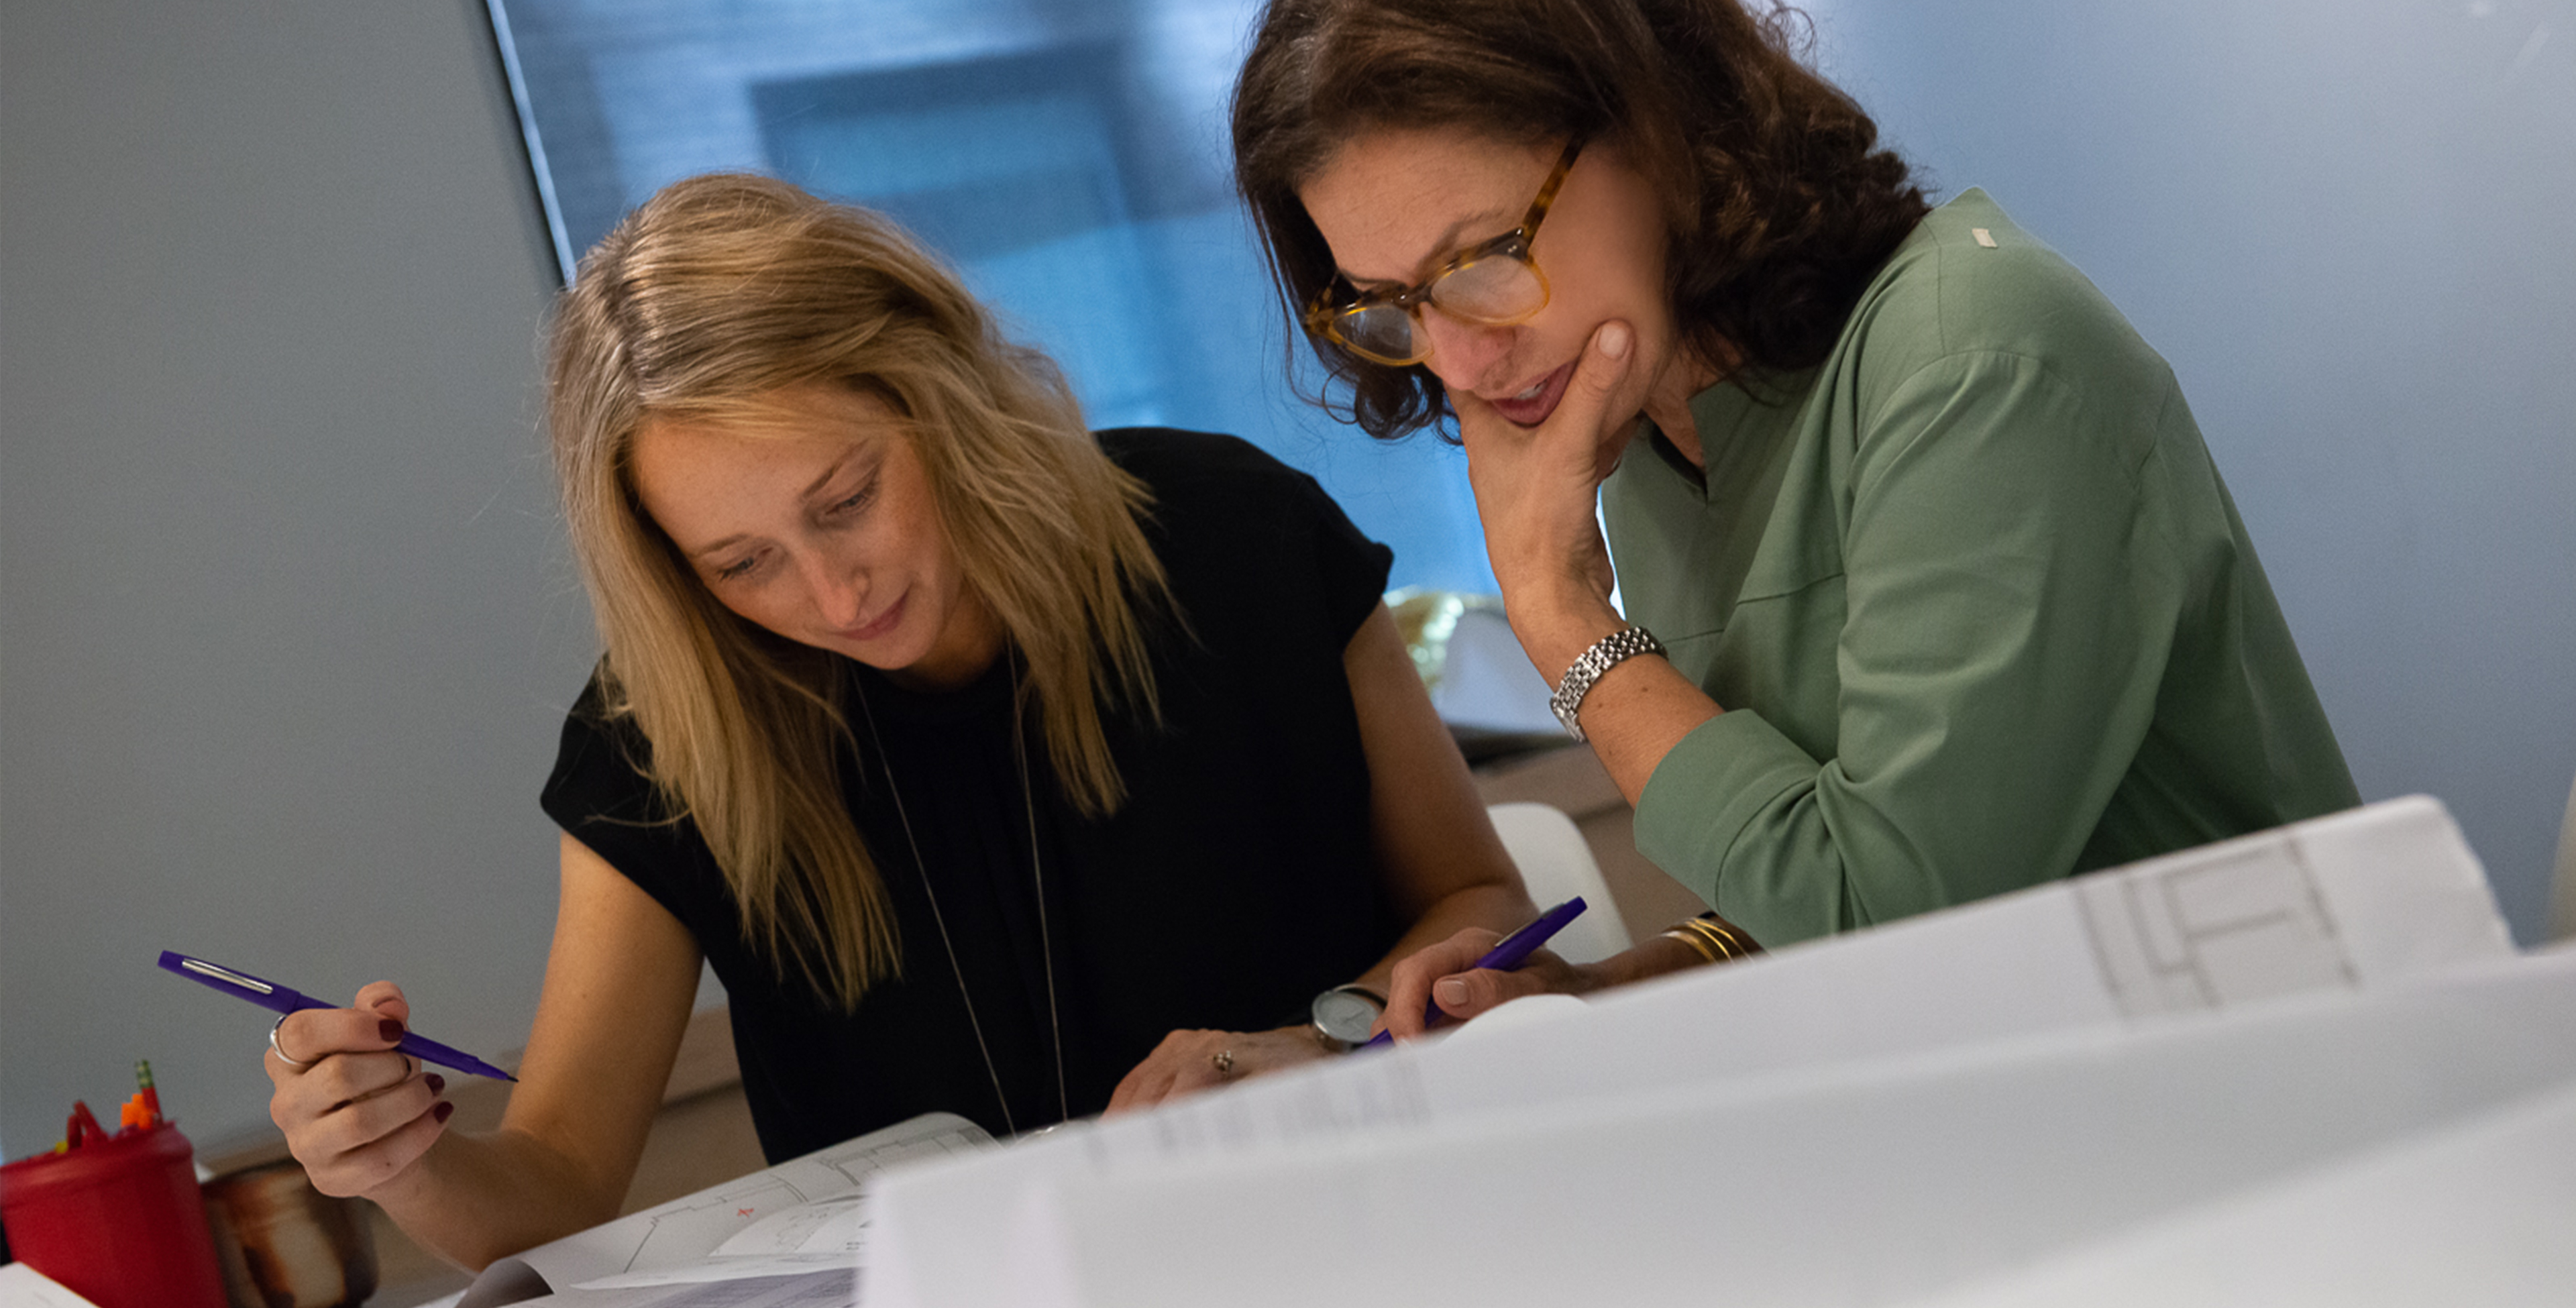 Suzan and Erin working on a project together for Tillotson Design Associates